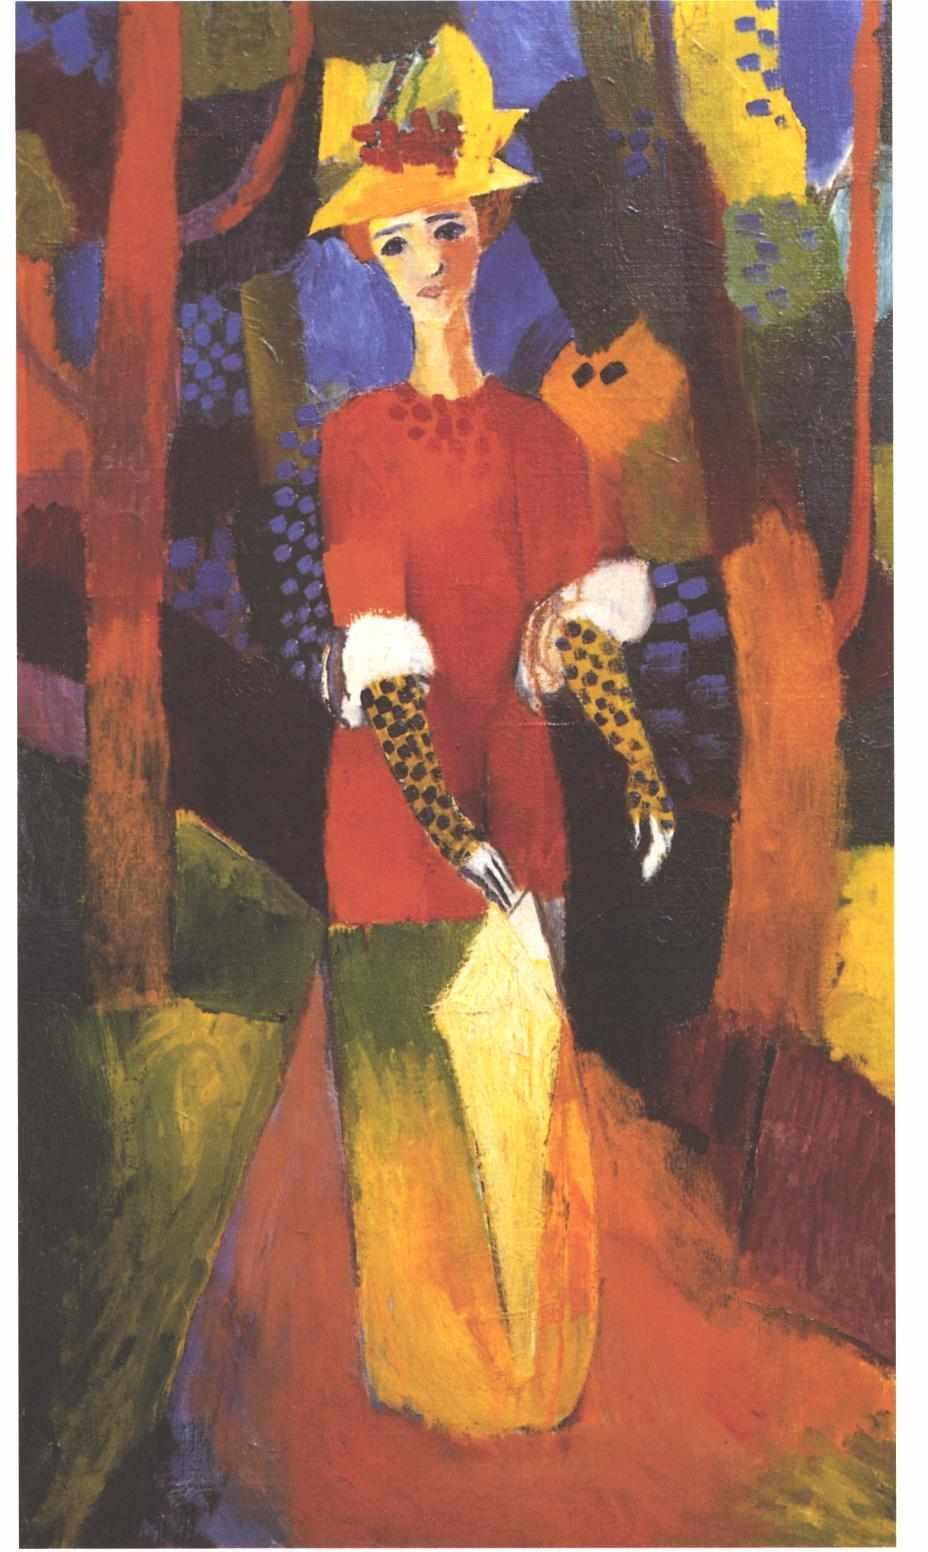 Woman in park - August Macke